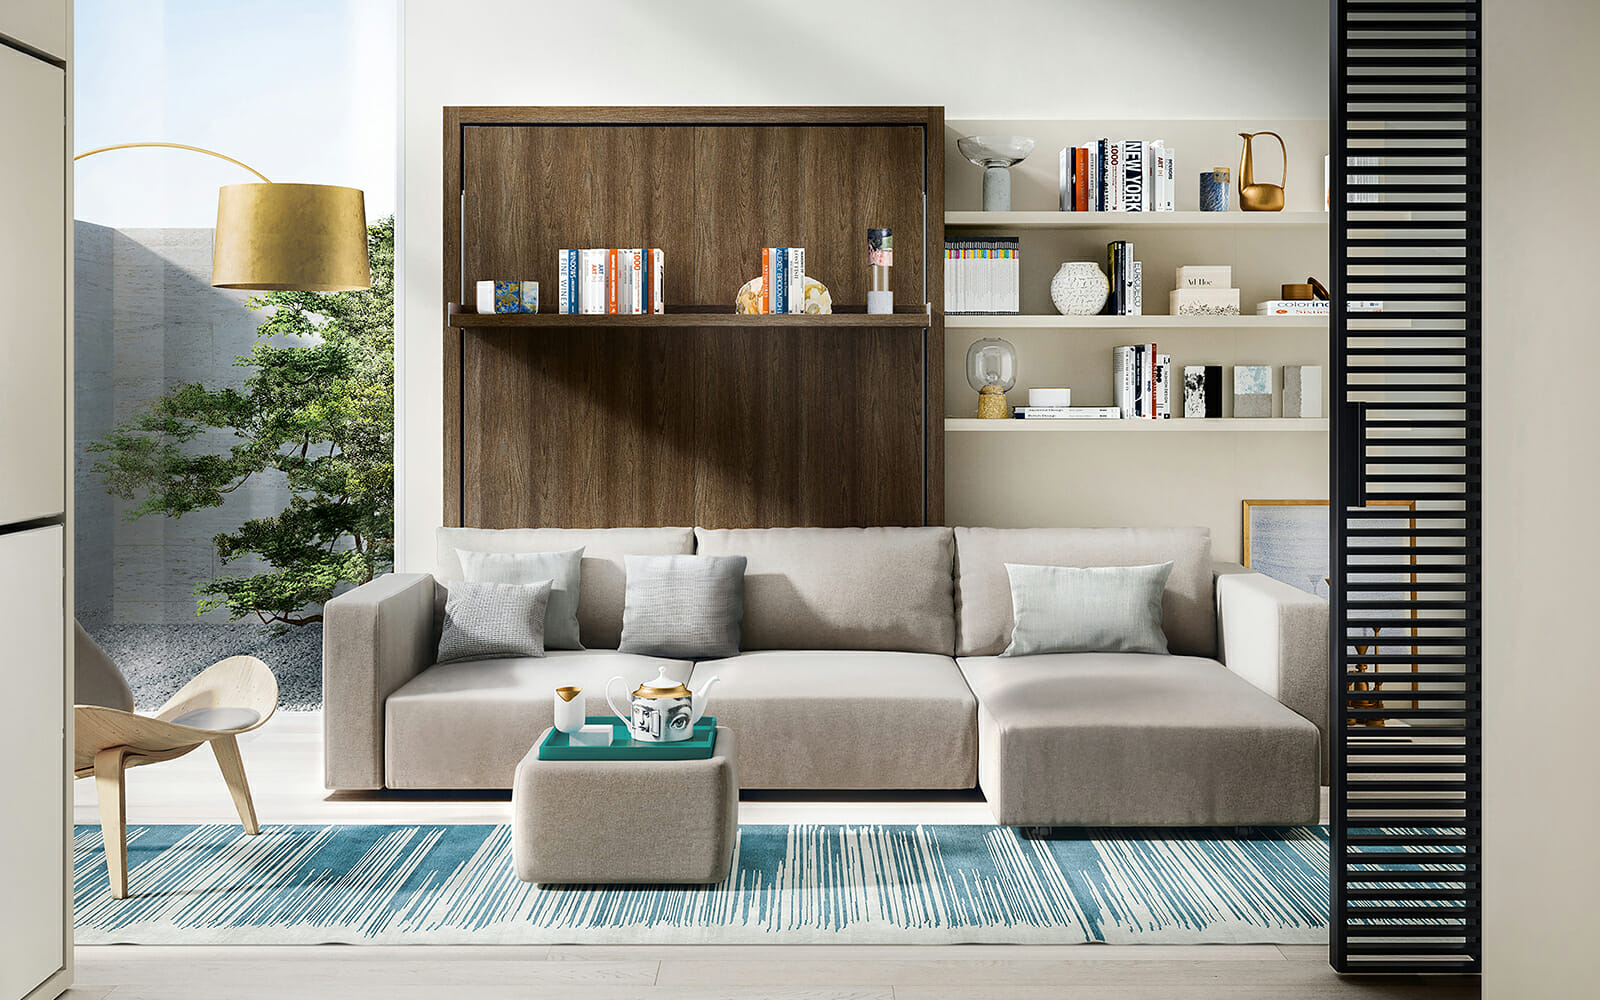 Resource Furniture features a curated selection of space-saving products, including Italian-made Murphy beds, sofas, storage pieces, and other transforming furniture solutions.